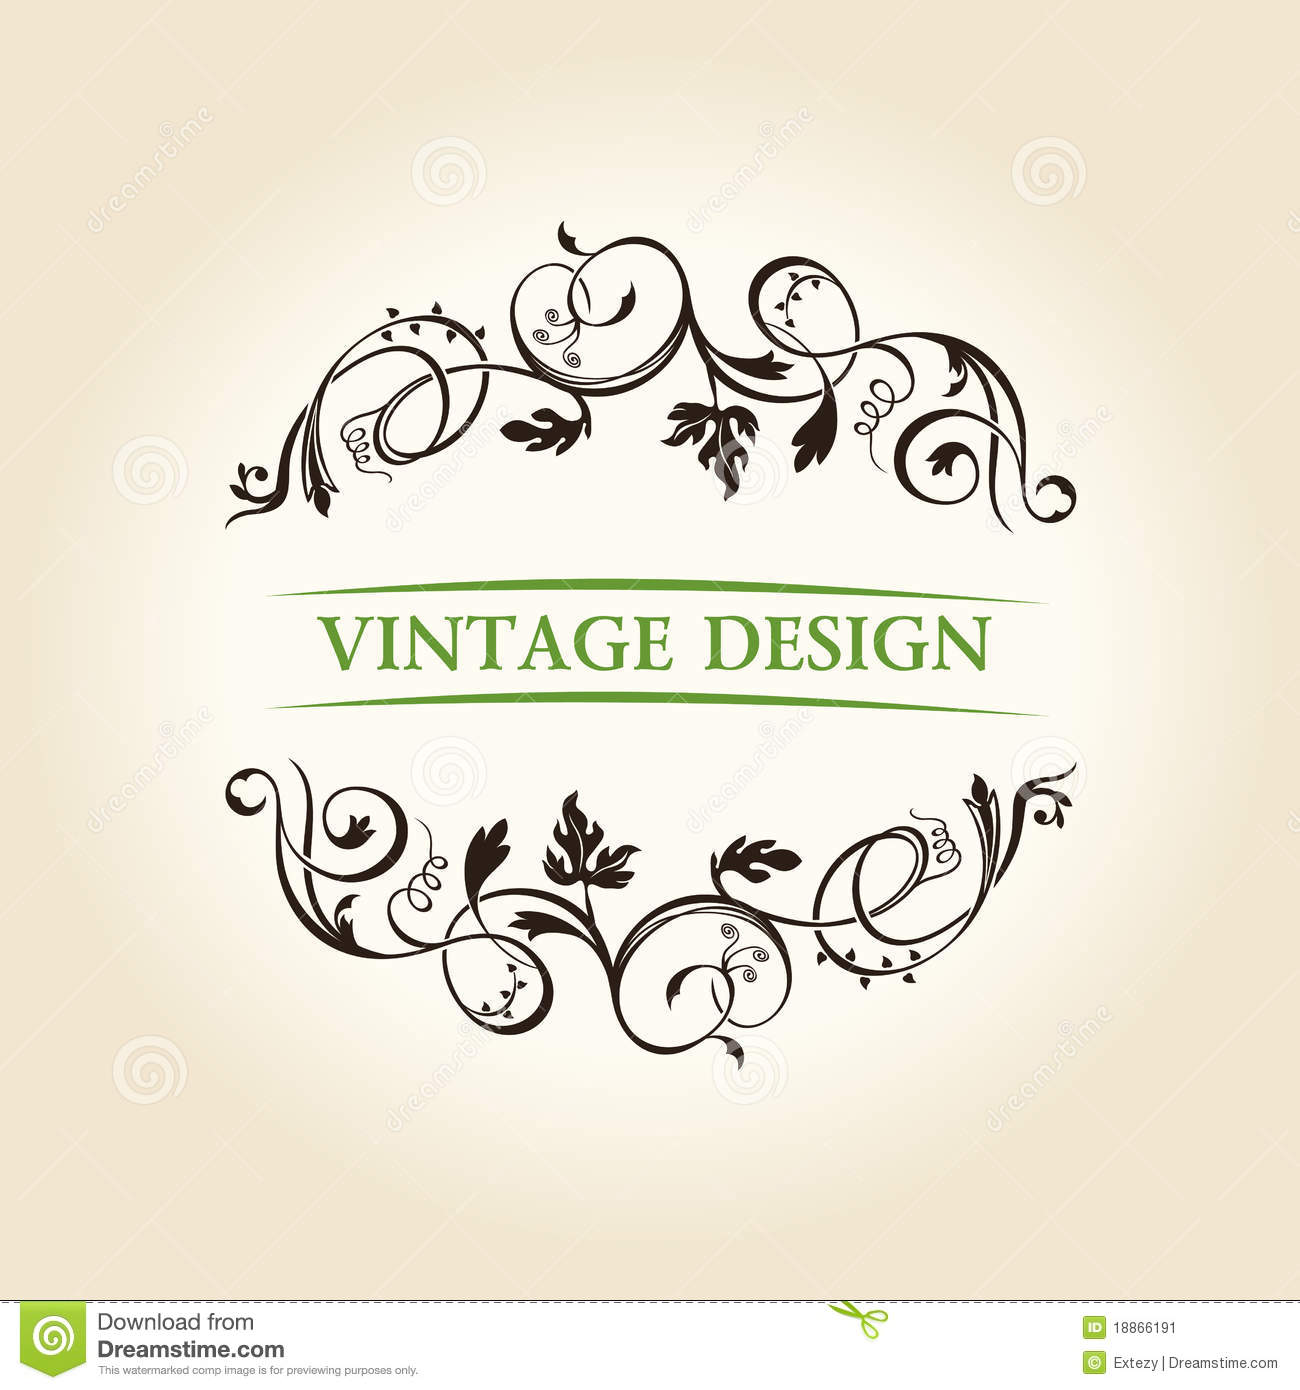 Vintage Decor Label Ornament Design Emblem Stock Image ...